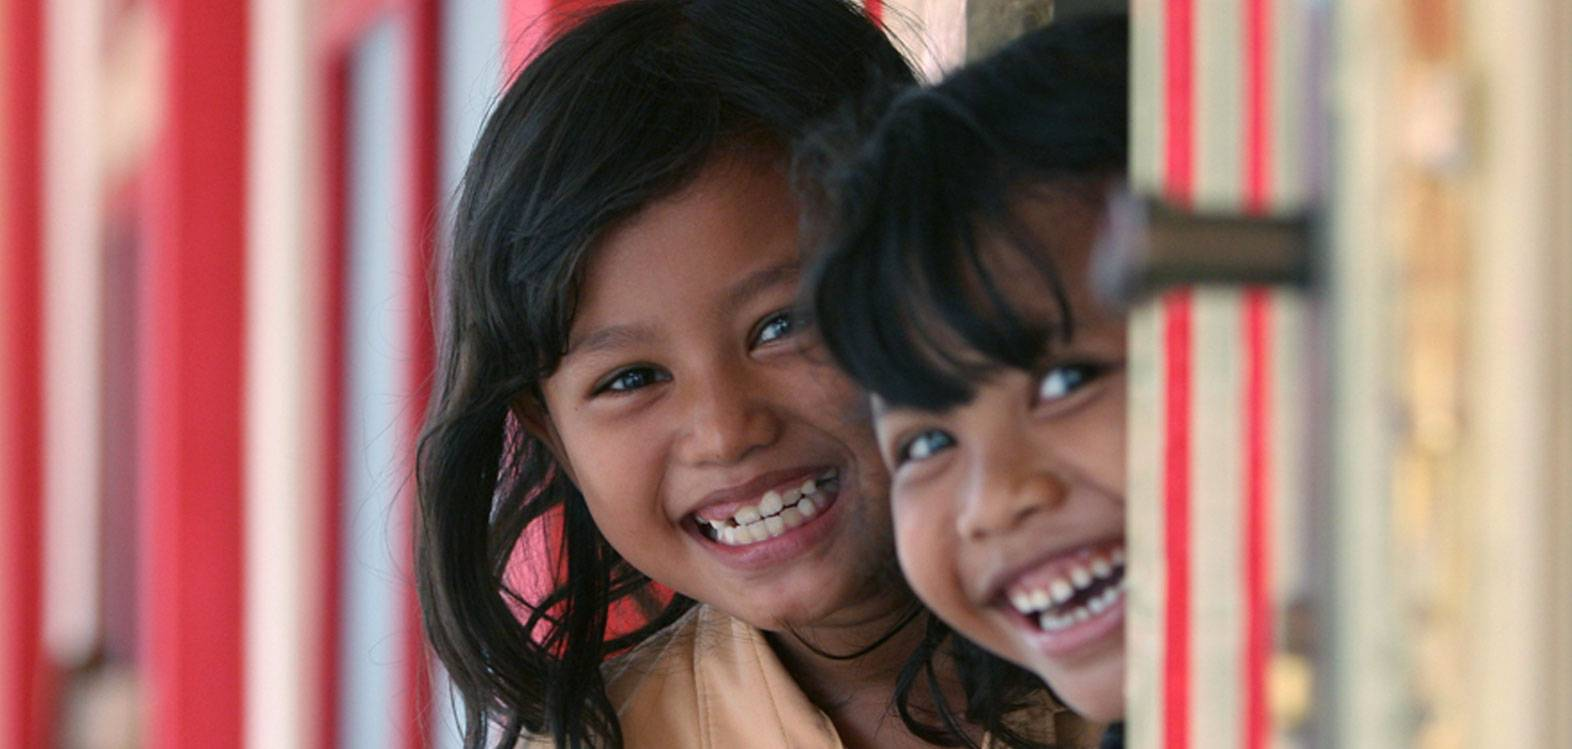 Unicef in Bali and Java